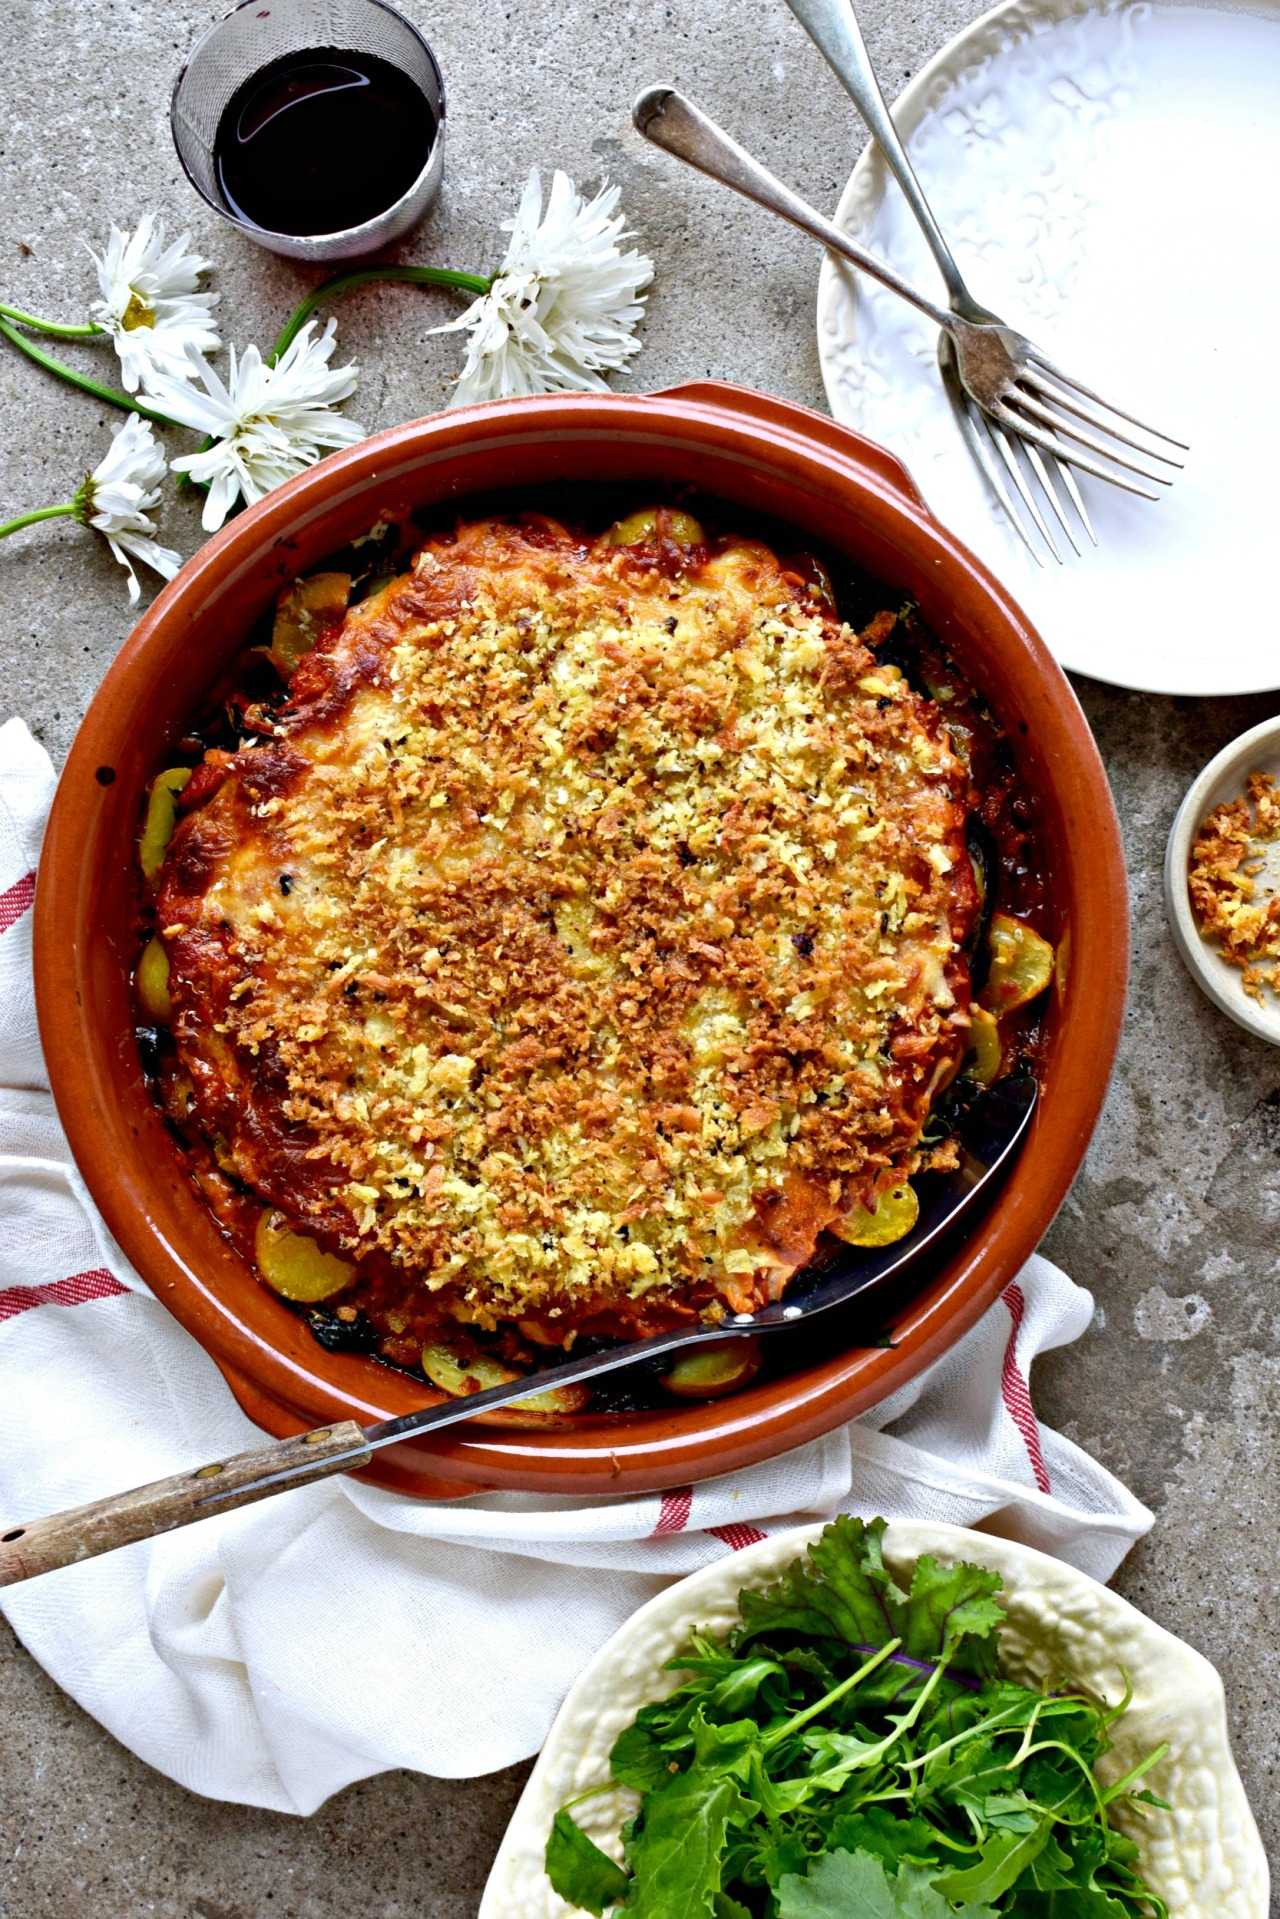 A delicious late-summer jackpot of a recipe,done alla parmigiana. Not just eggplants, but chard, potatoes, garlicky oil and a simple homemade sauce, layered up and covered in gooey cheese and earthy porcini breadcrumbs. Hearty yet light; a vegetarian recipe the whole family will love.